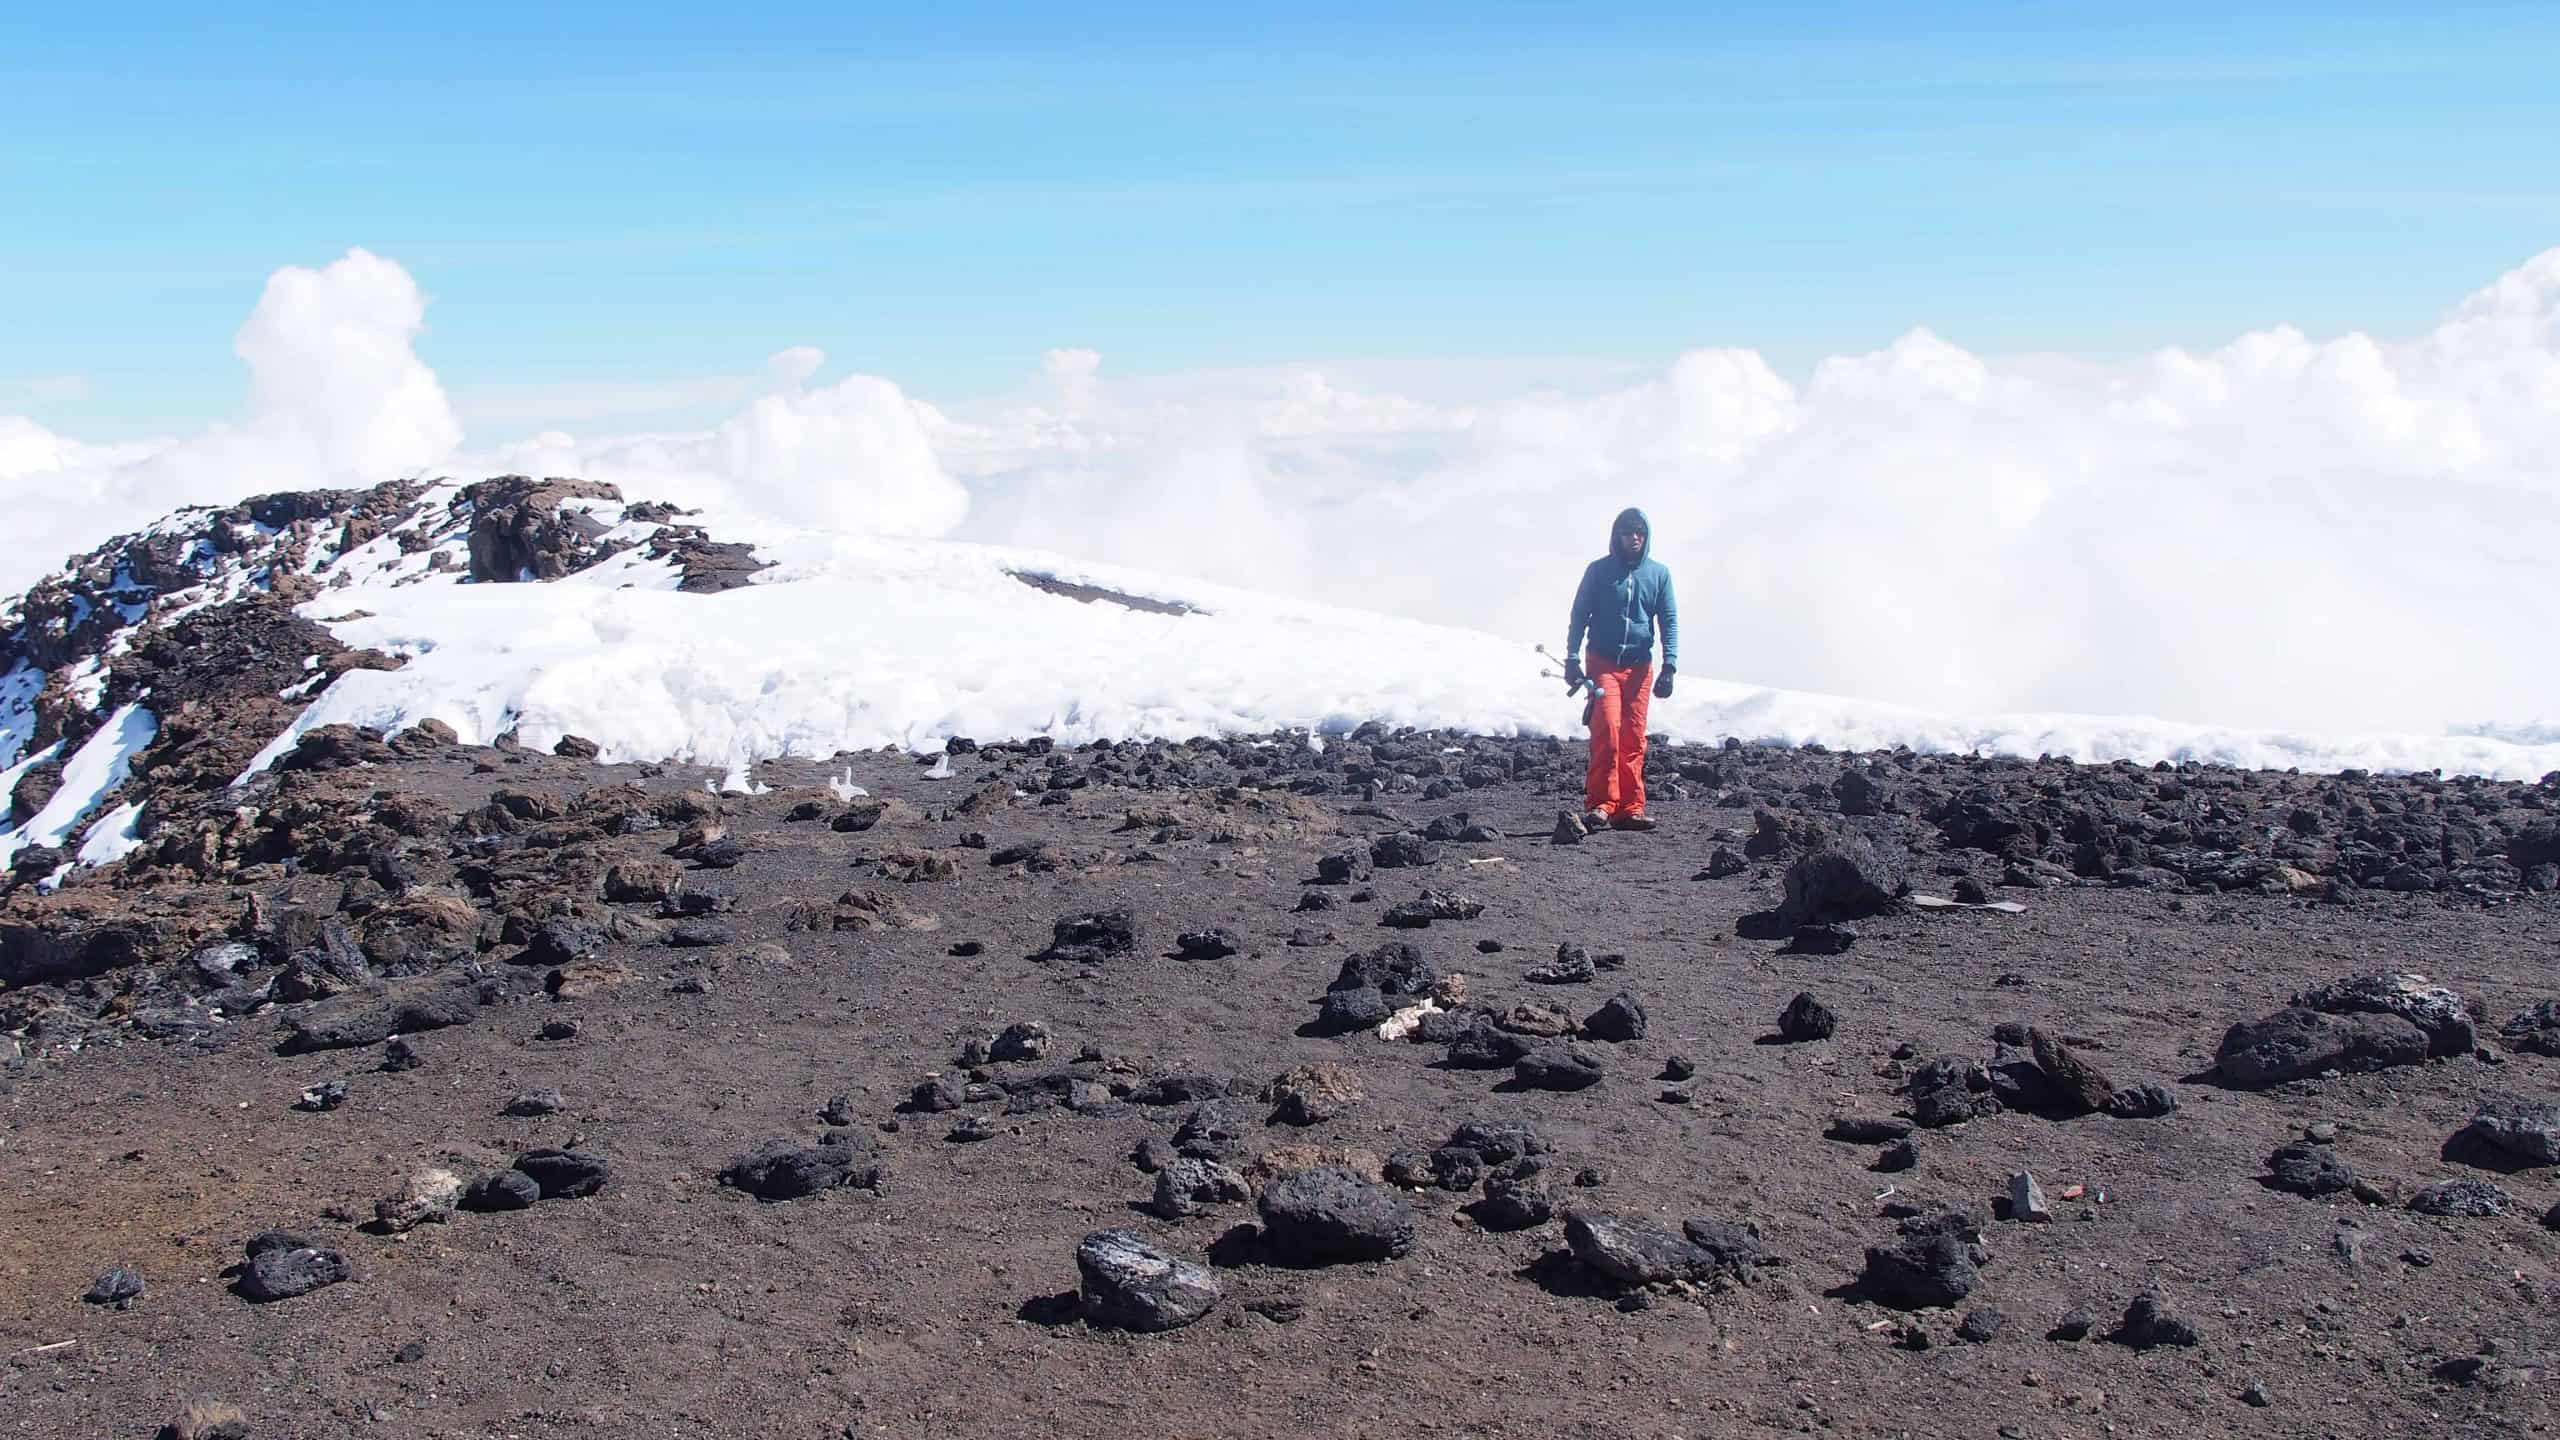 Climbing Mt Kilimajaro whilst holding on to an empowring thought.